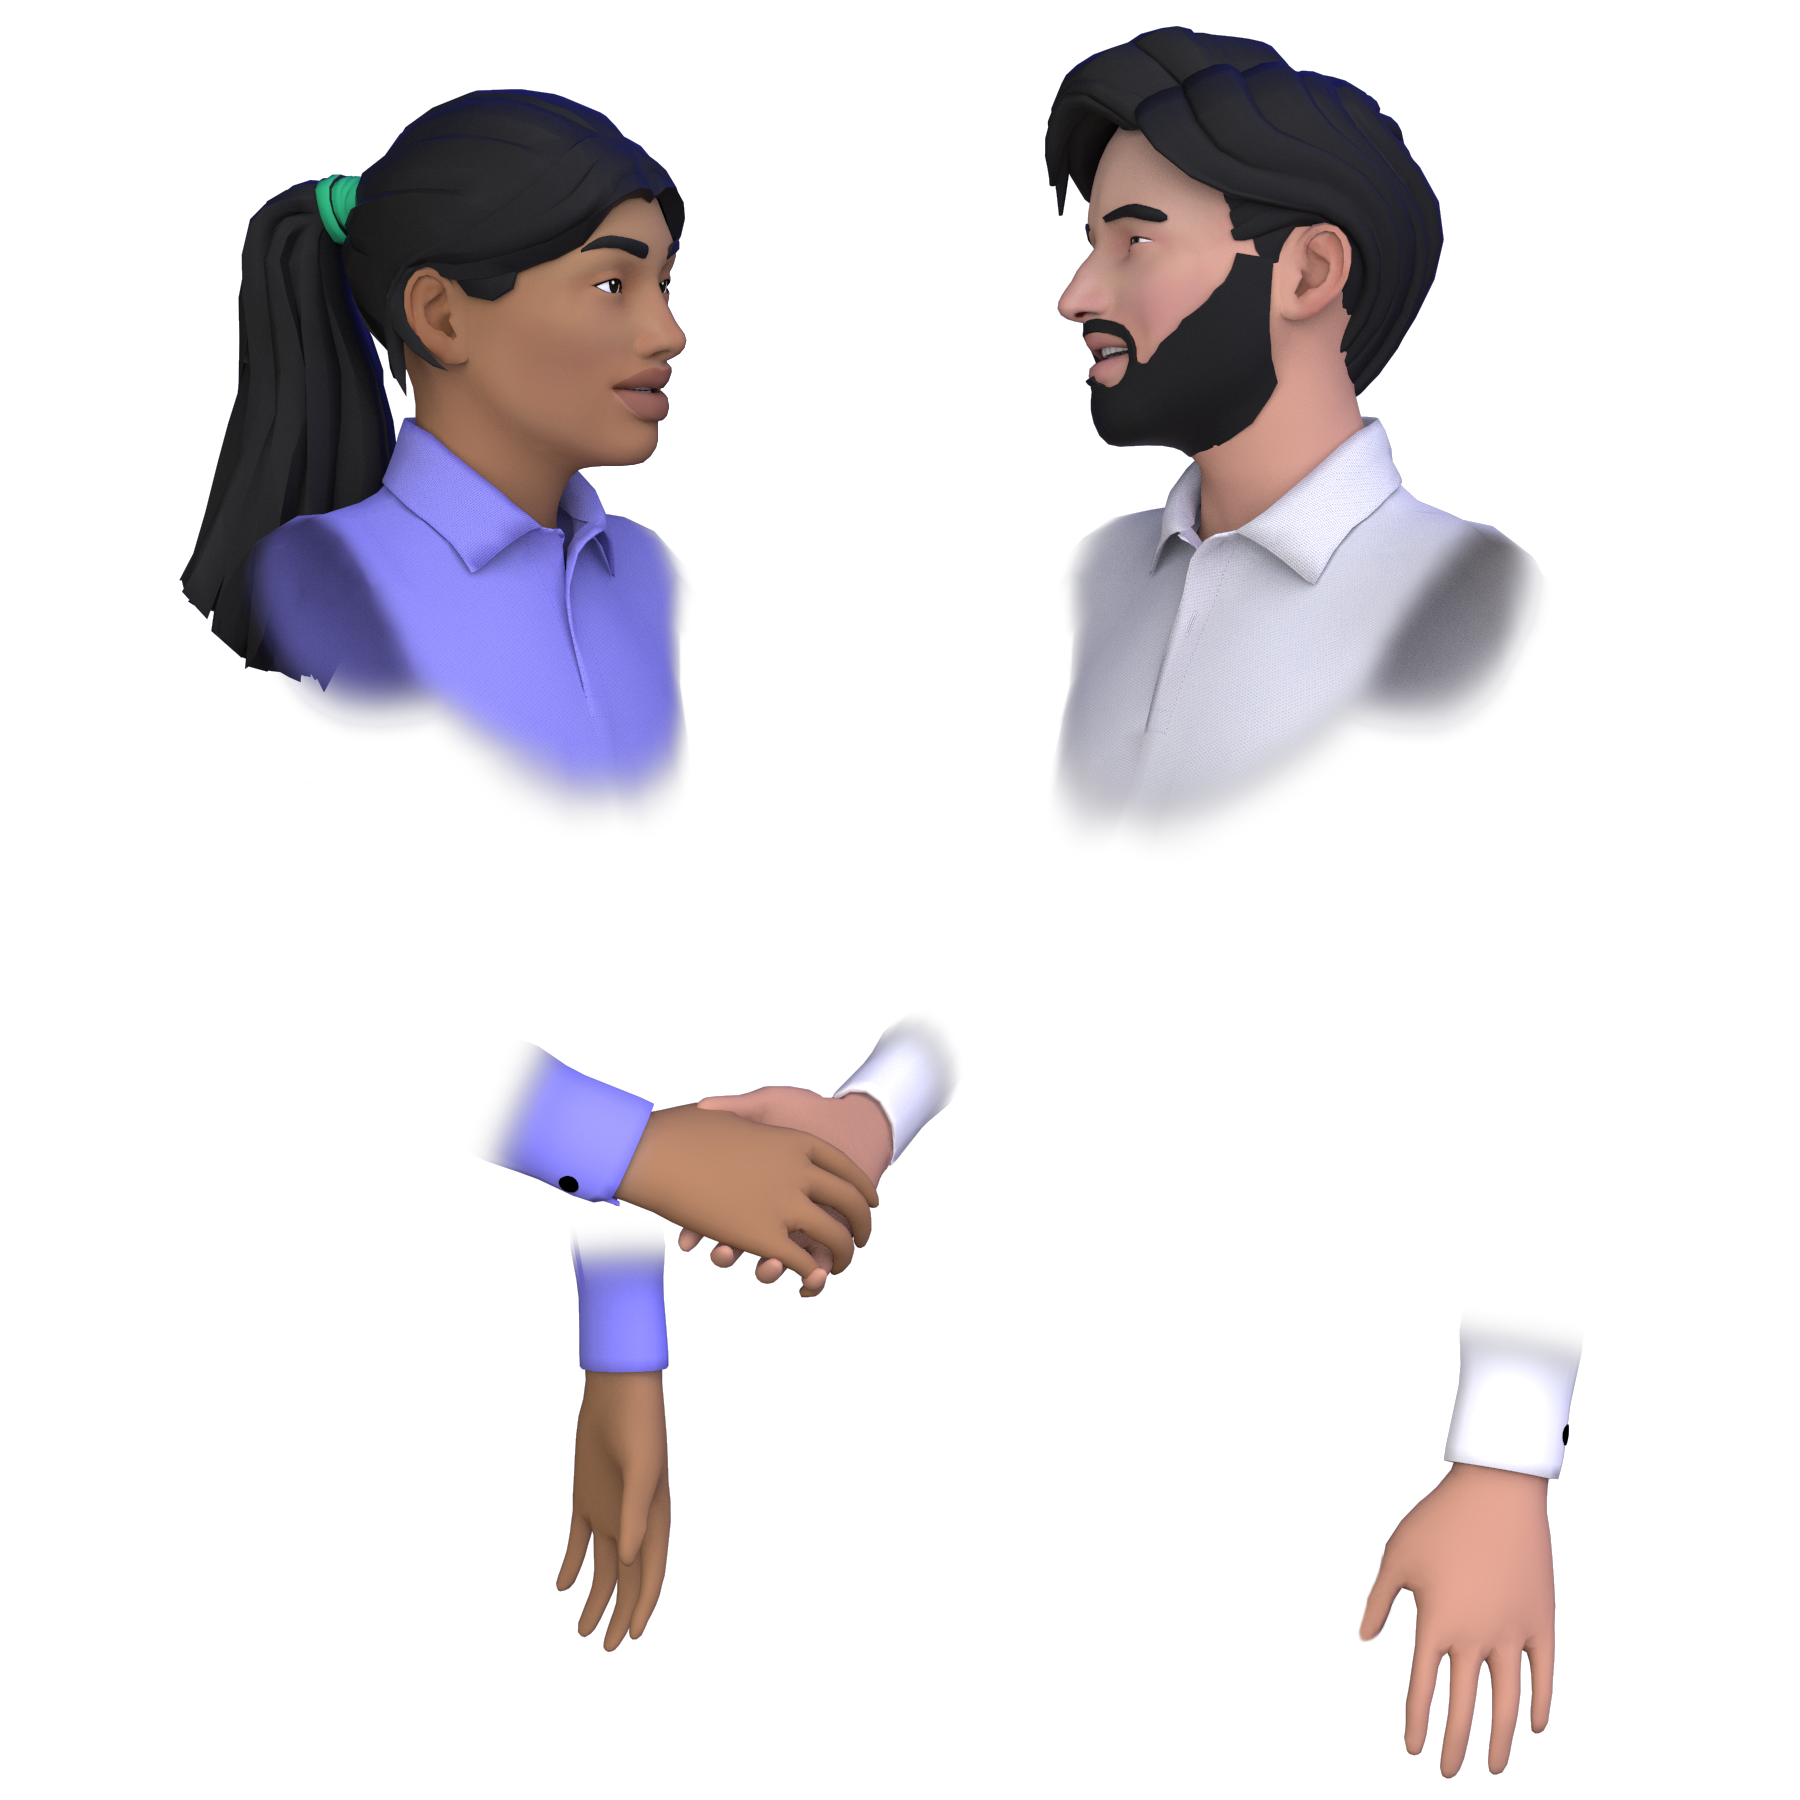 meetinVR Handshake between avatars